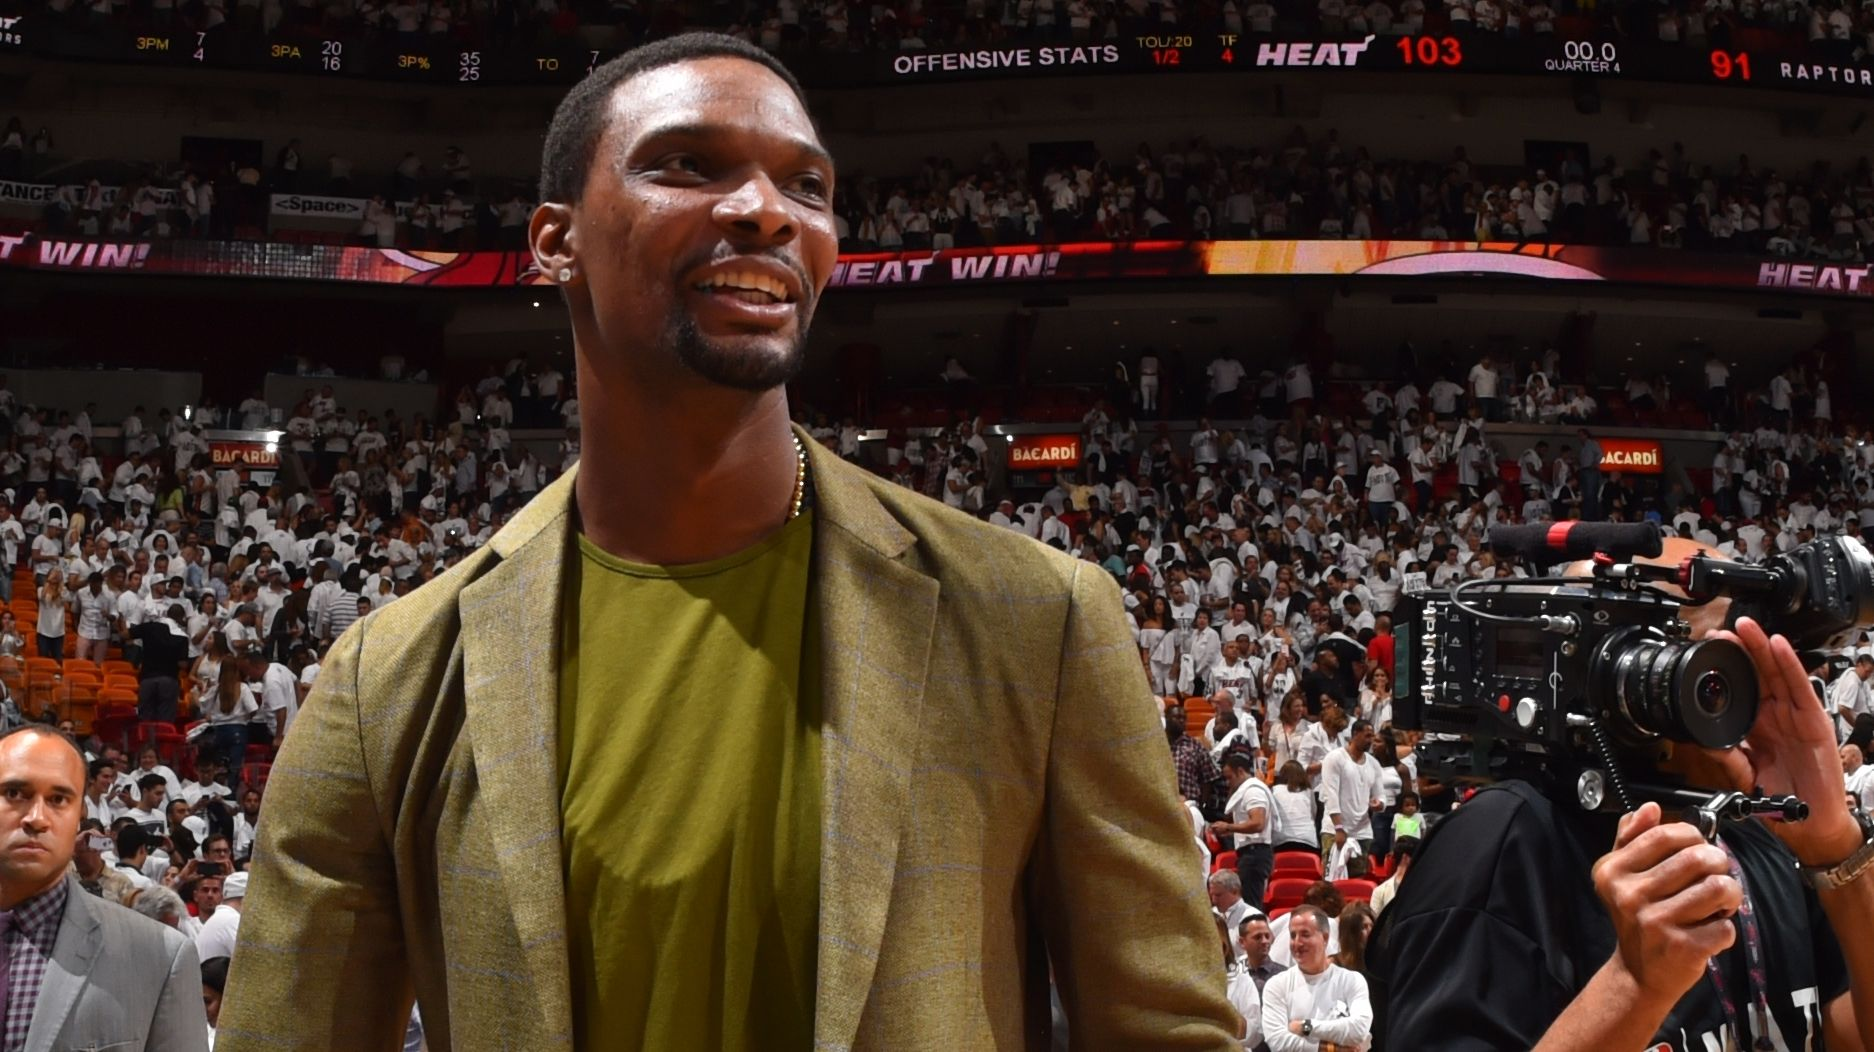 https://secure.espncdn.com/combiner/i?img=/media/motion/2016/0516/dm_160516_Windhorst_on_Bosh_Heat/dm_160516_Windhorst_on_Bosh_Heat.jpg